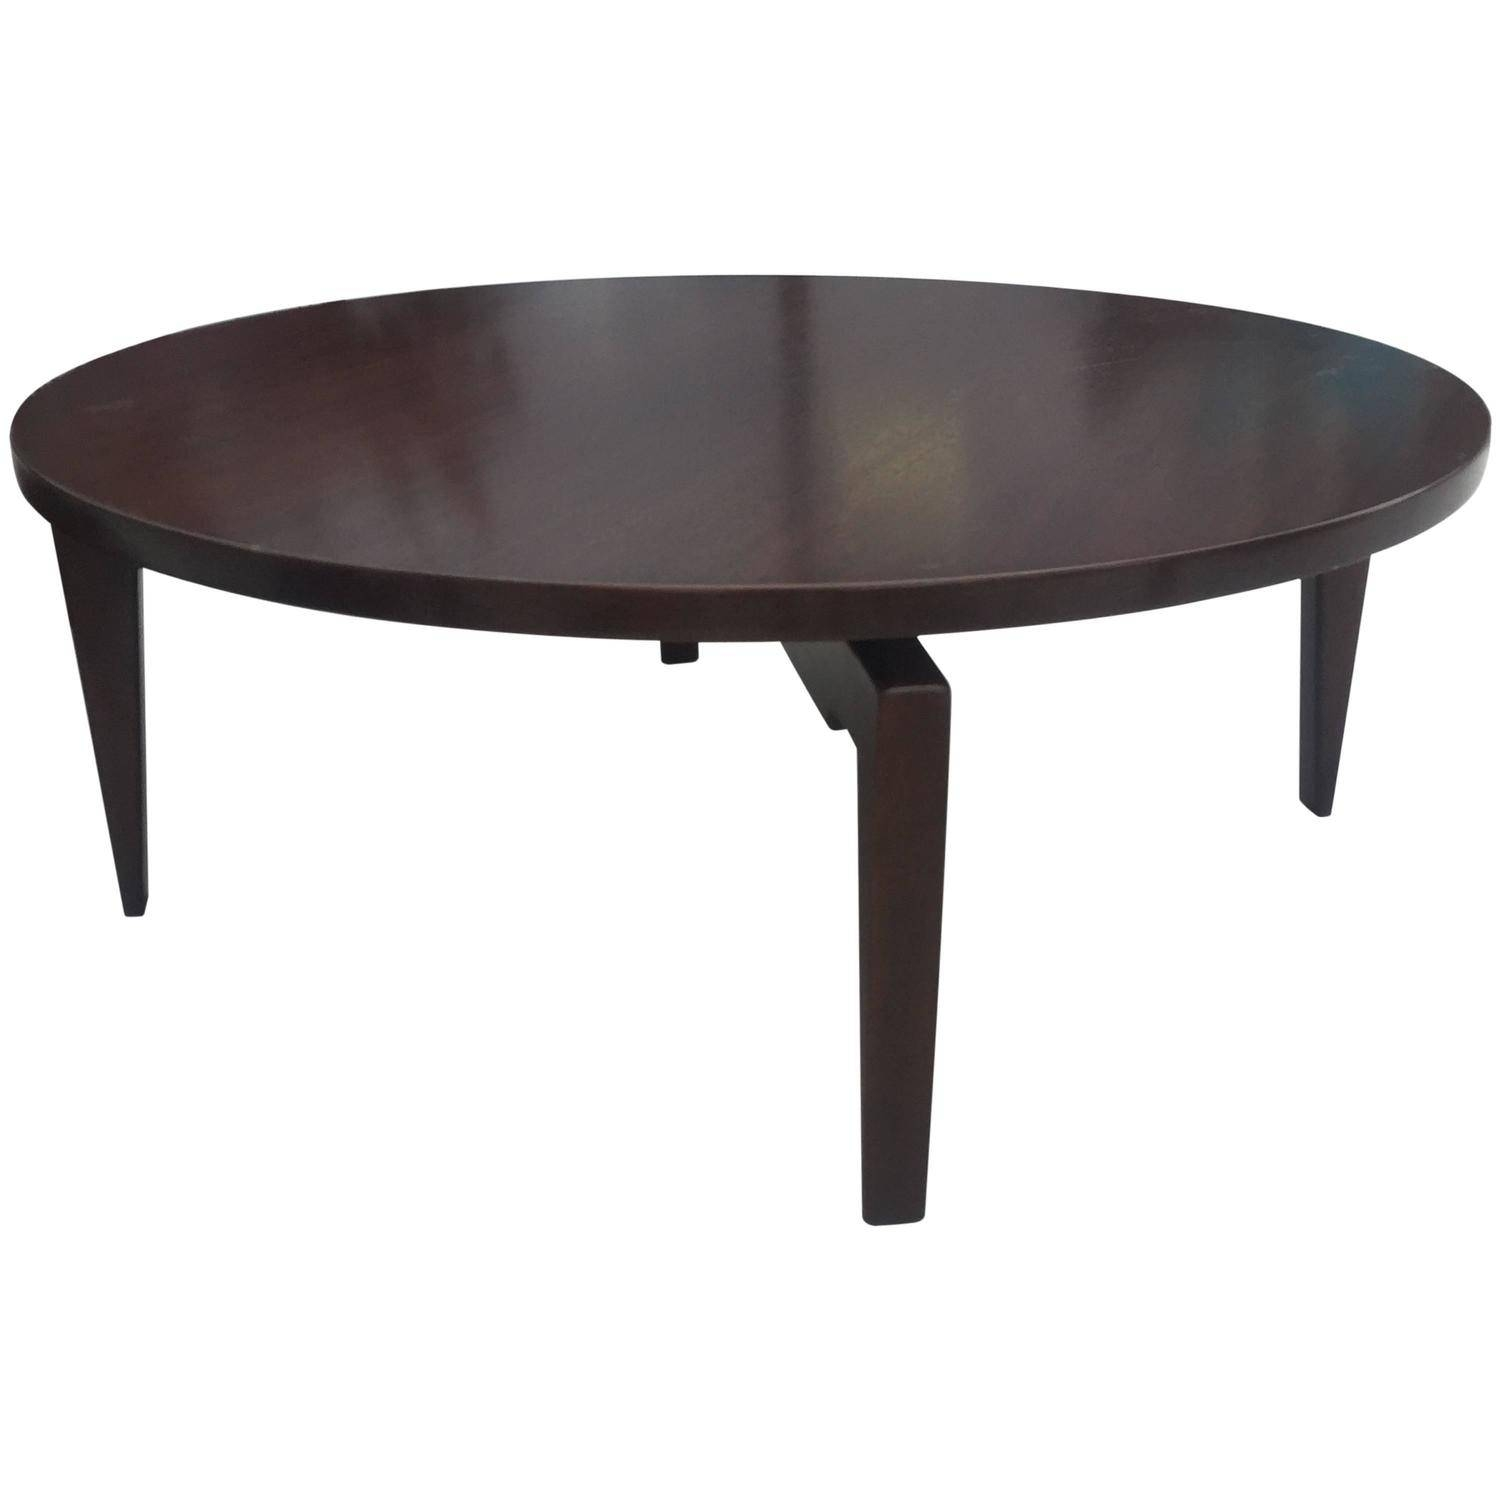 Jens Risom Round Walnut Coffee Table With Lazy Susan Top At 1Stdibs with regard to Oval Walnut Coffee Tables (Image 14 of 30)